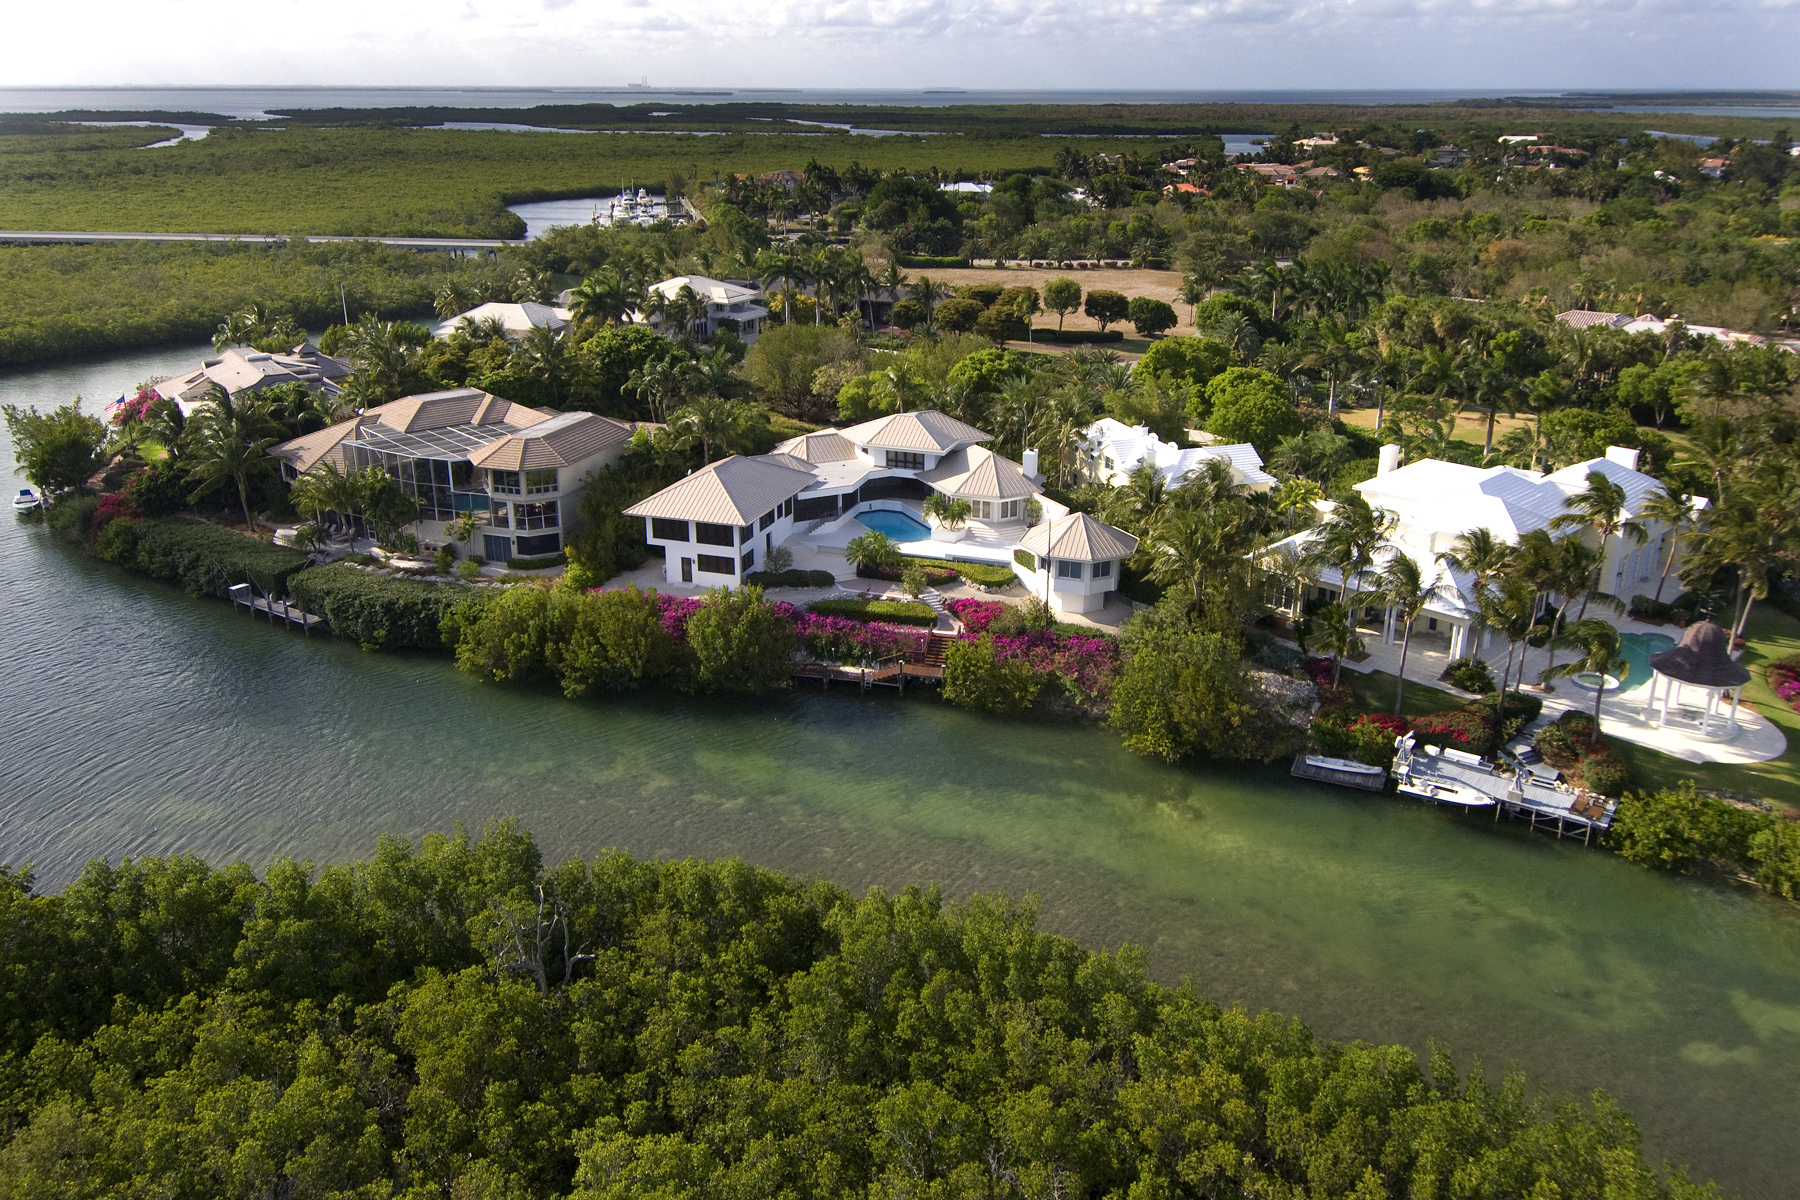 Moradia para Venda às Ocean Views from Ocean Reef Home 9 Osprey Lane Ocean Reef Community, Key Largo, Florida, 33037 Estados Unidos